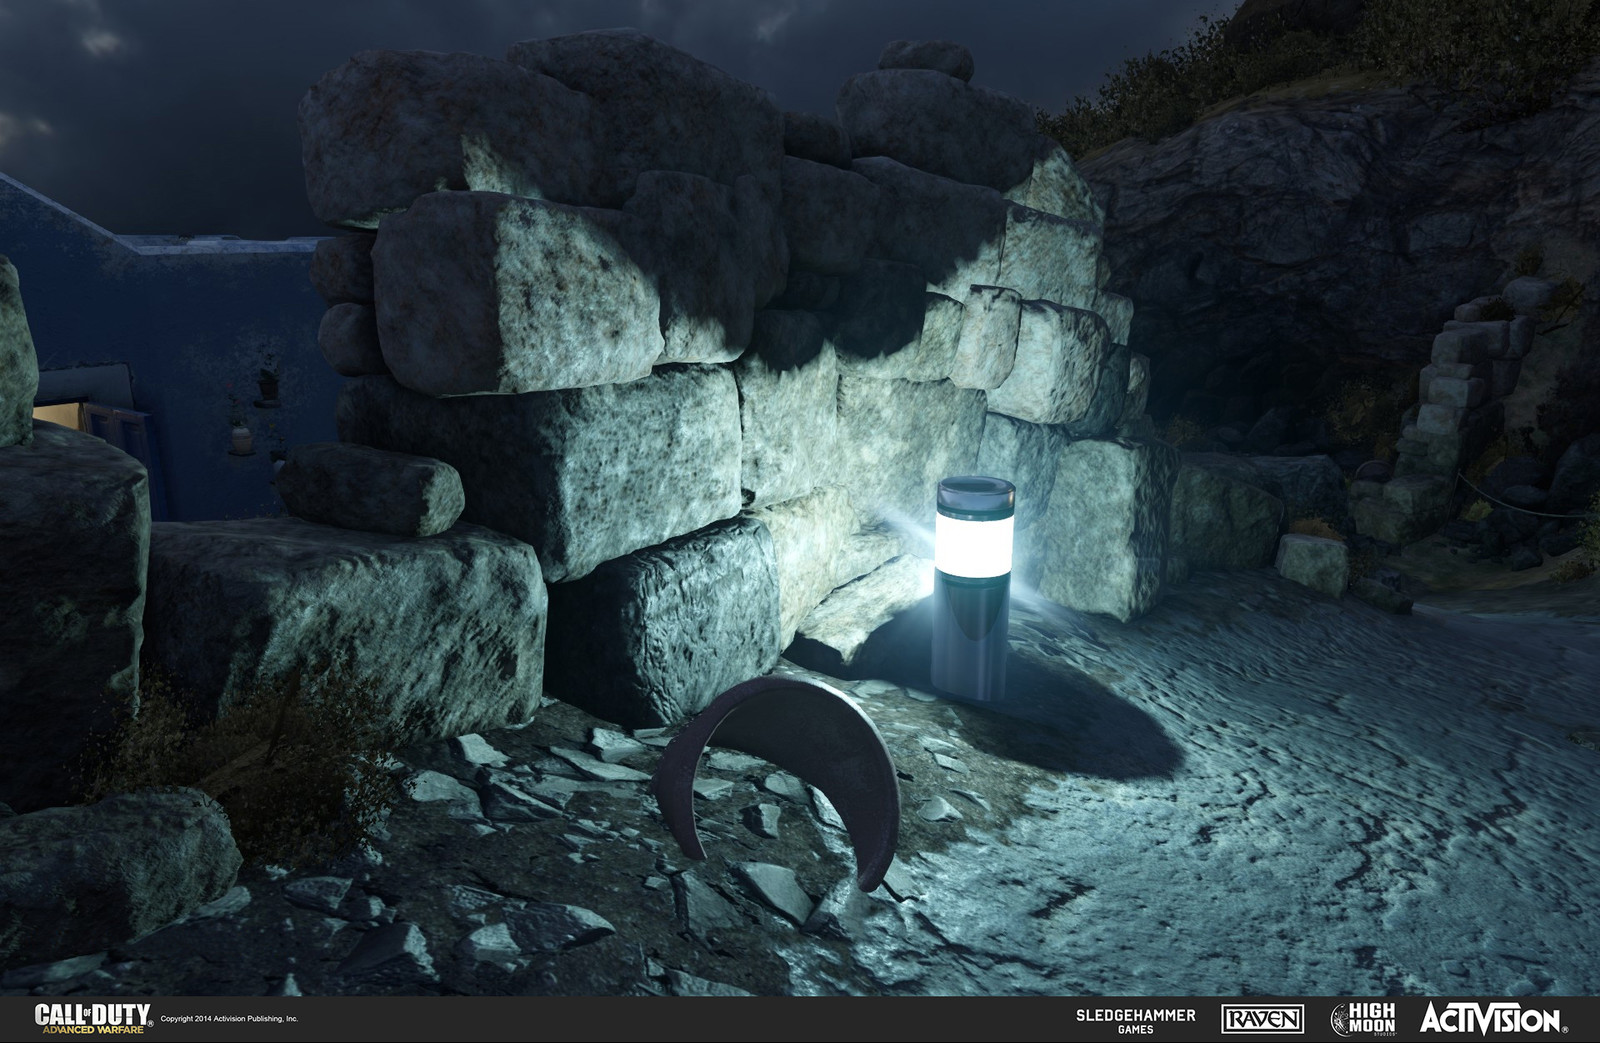 Created rock models and light canister in Terrace. The rocks were done in Z-Brush and the light canister in 3DSMax.